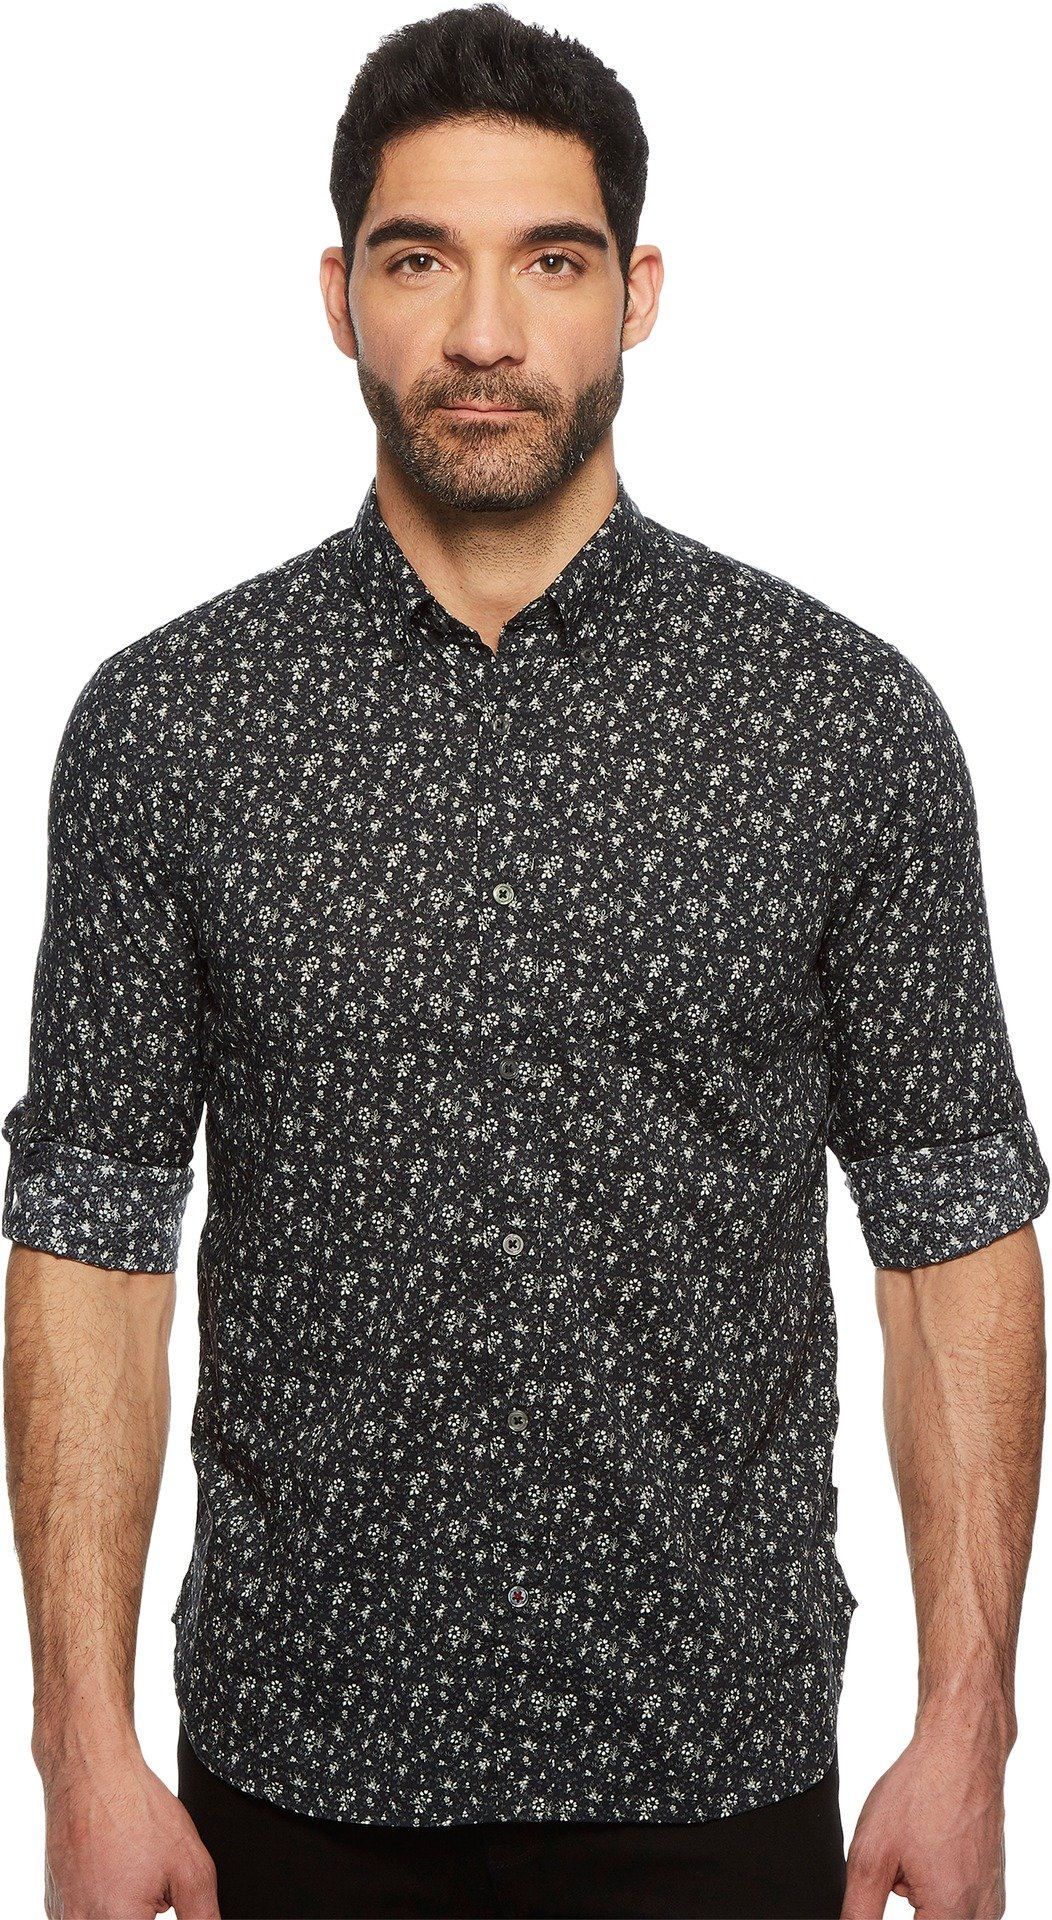 John Varvatos Star U.S.A. Men's Button Down Long Sleeve Roll-Up w/Single Pocket W530U1B Charcoal Medium